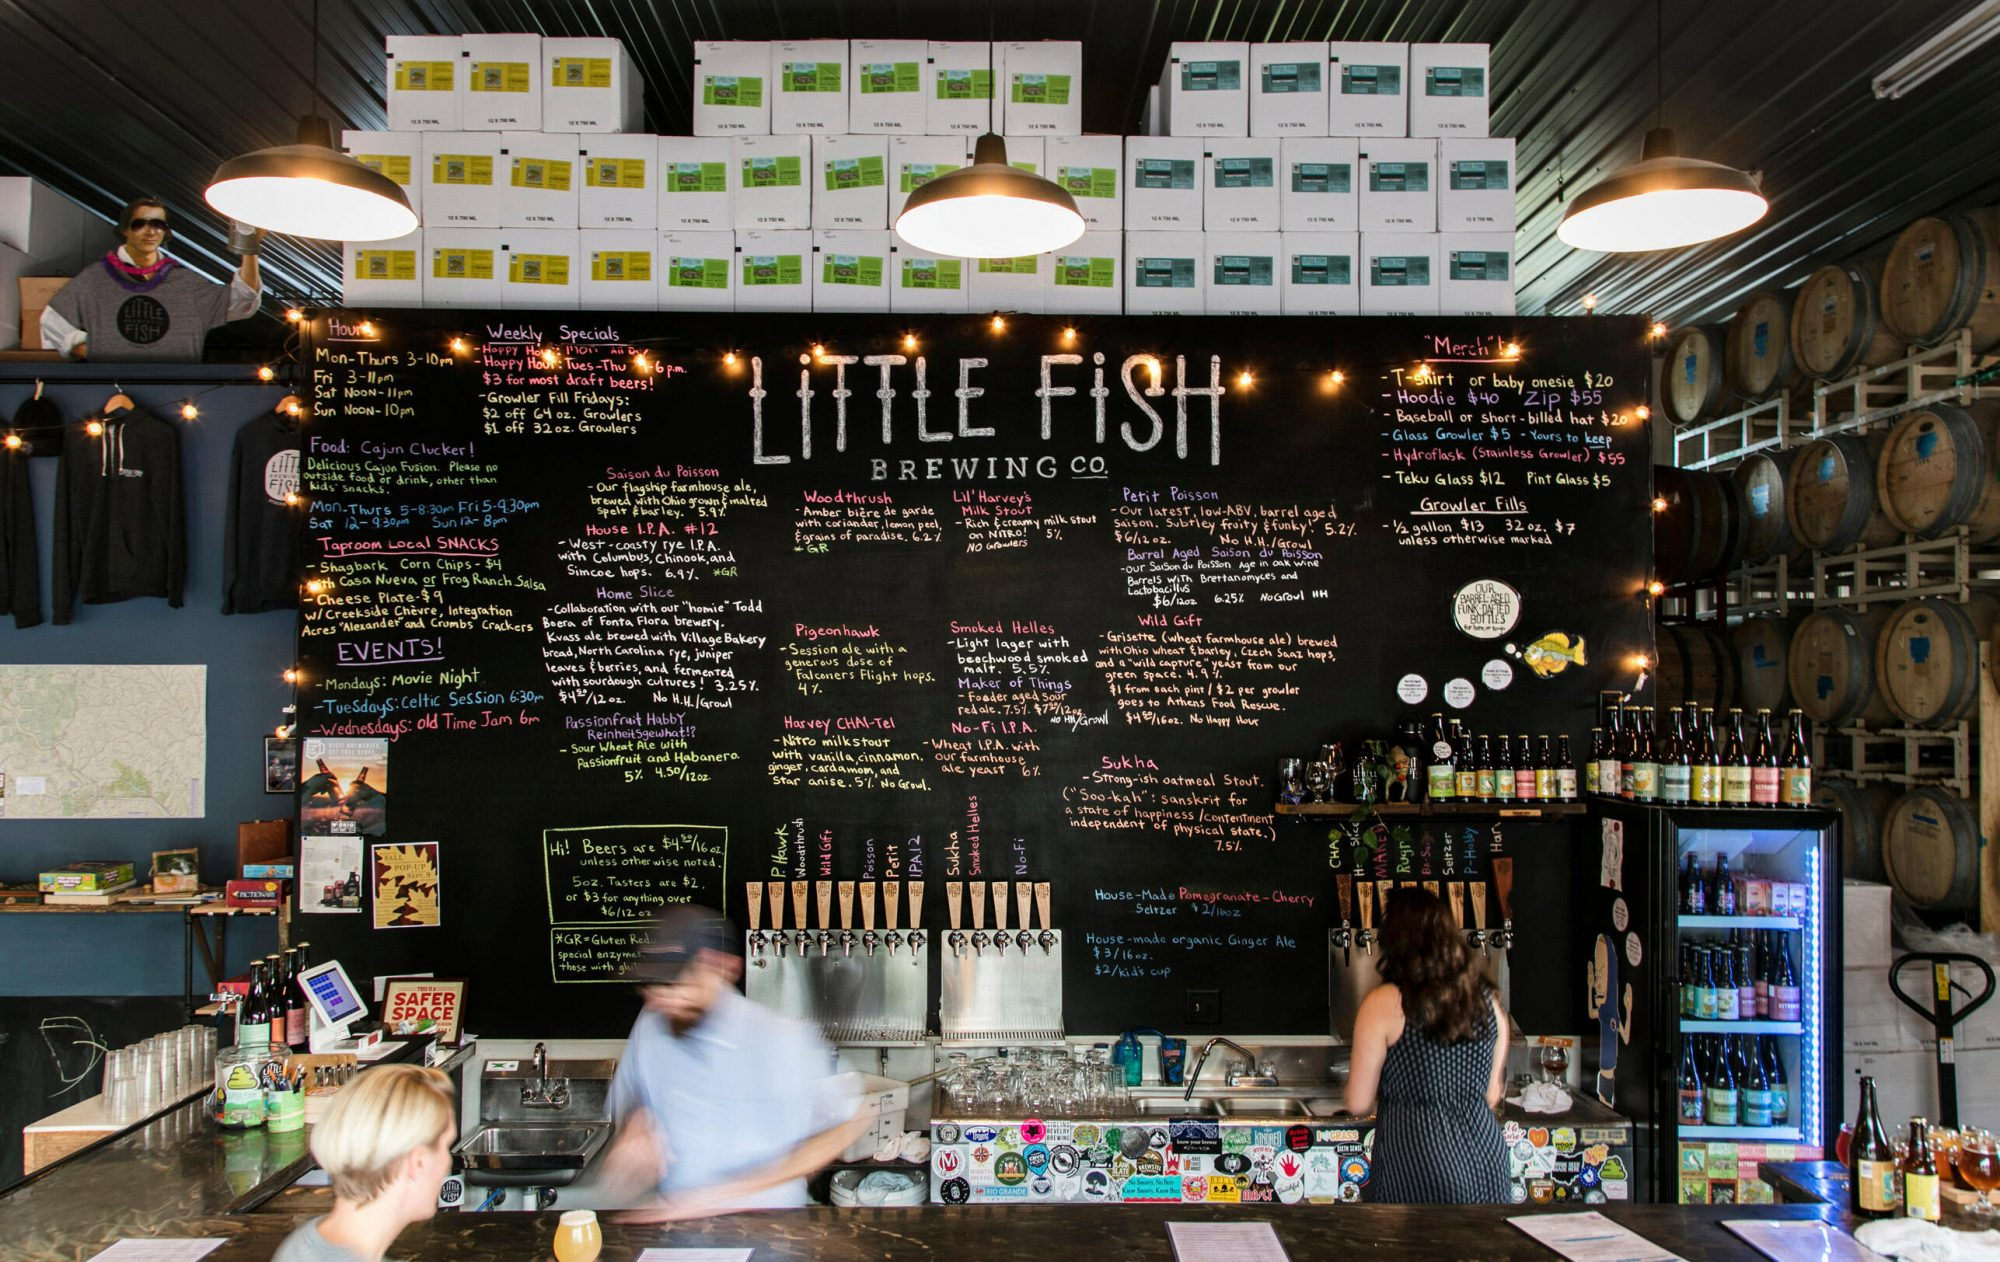 Little Fish Brewing Company Athens Ohio